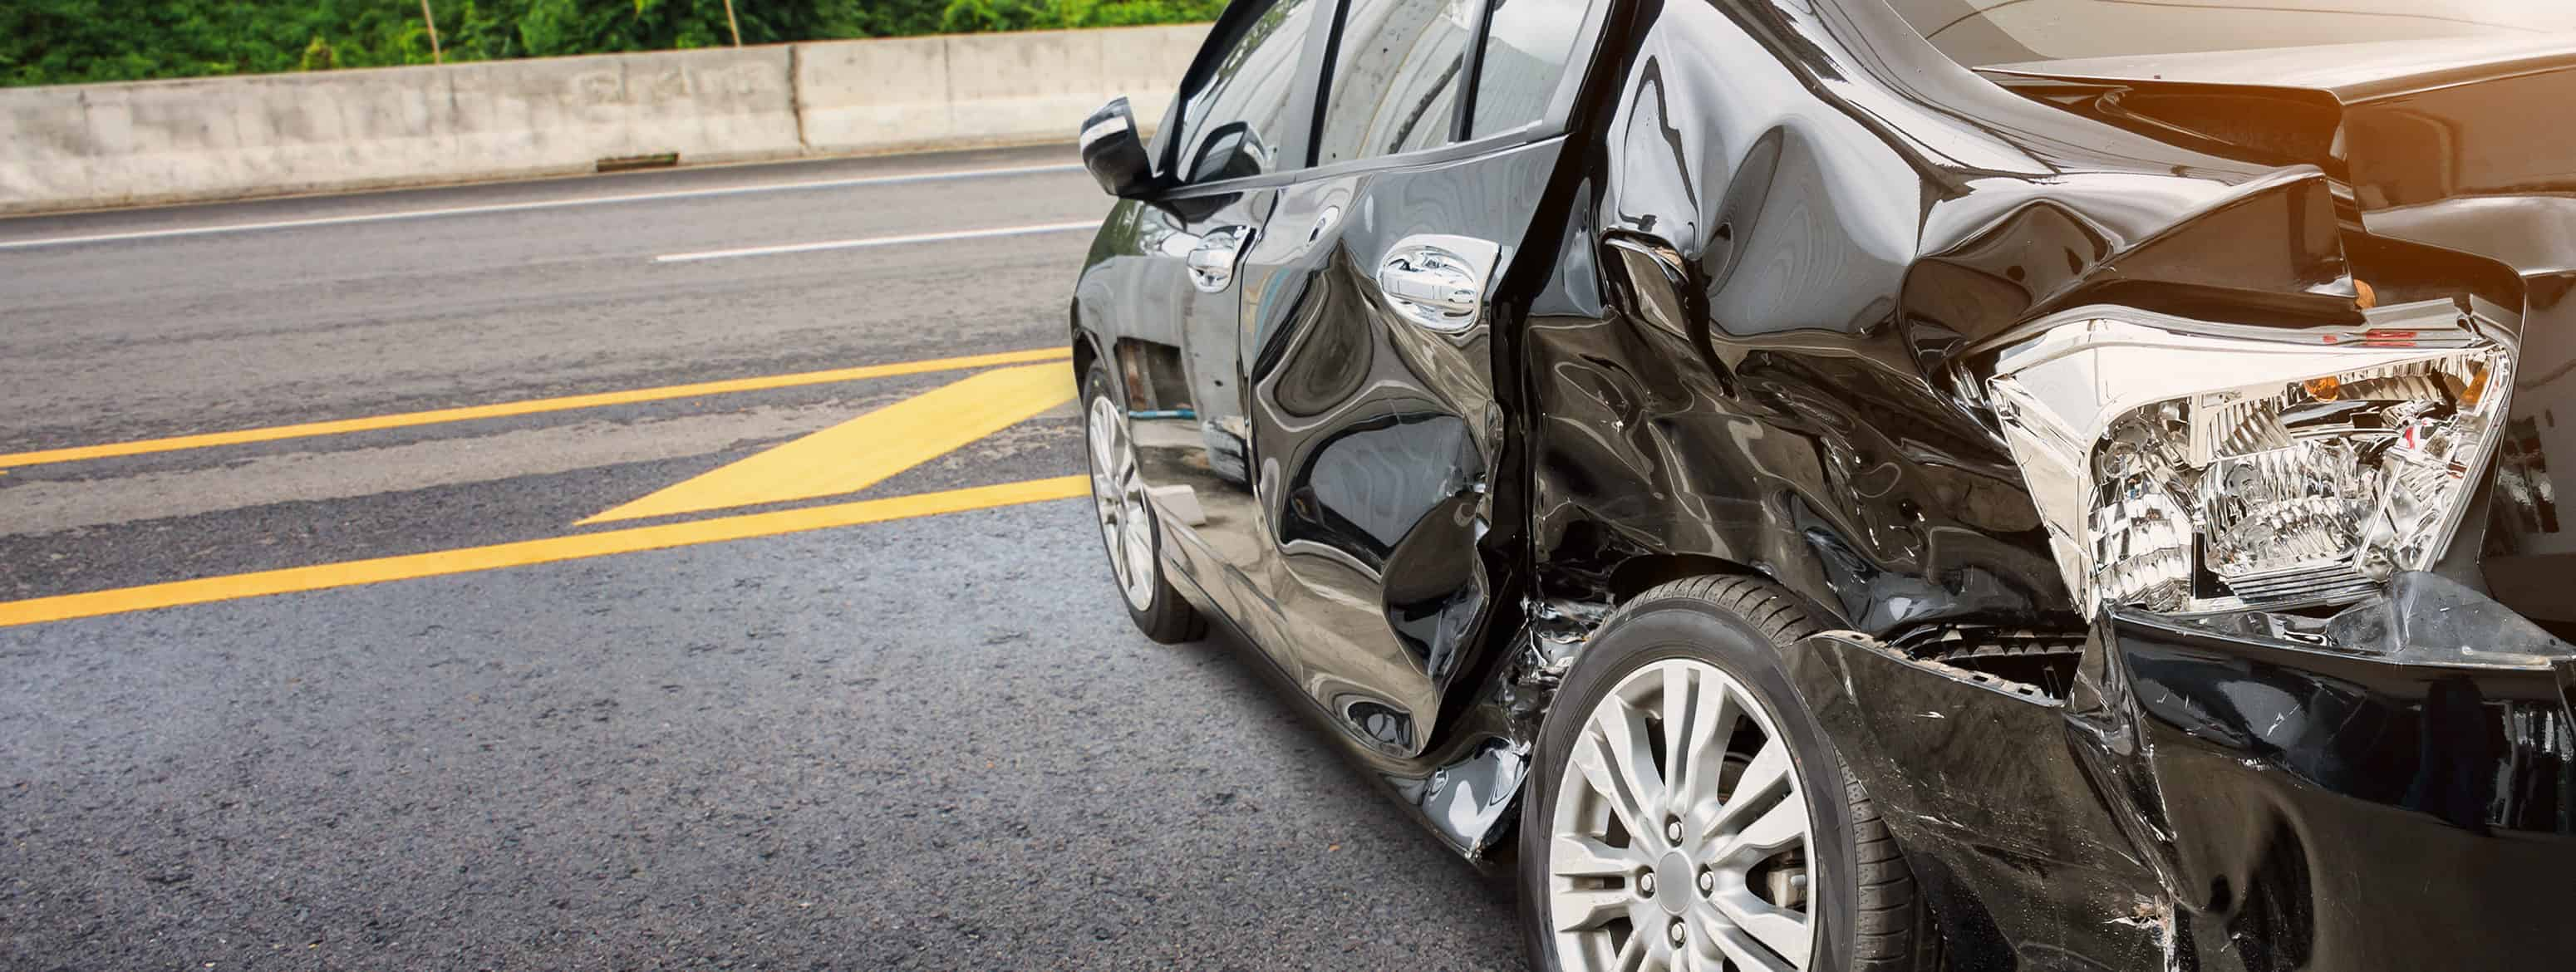 Injuries from auto accidents often require the assistance of a personal injury attorney.